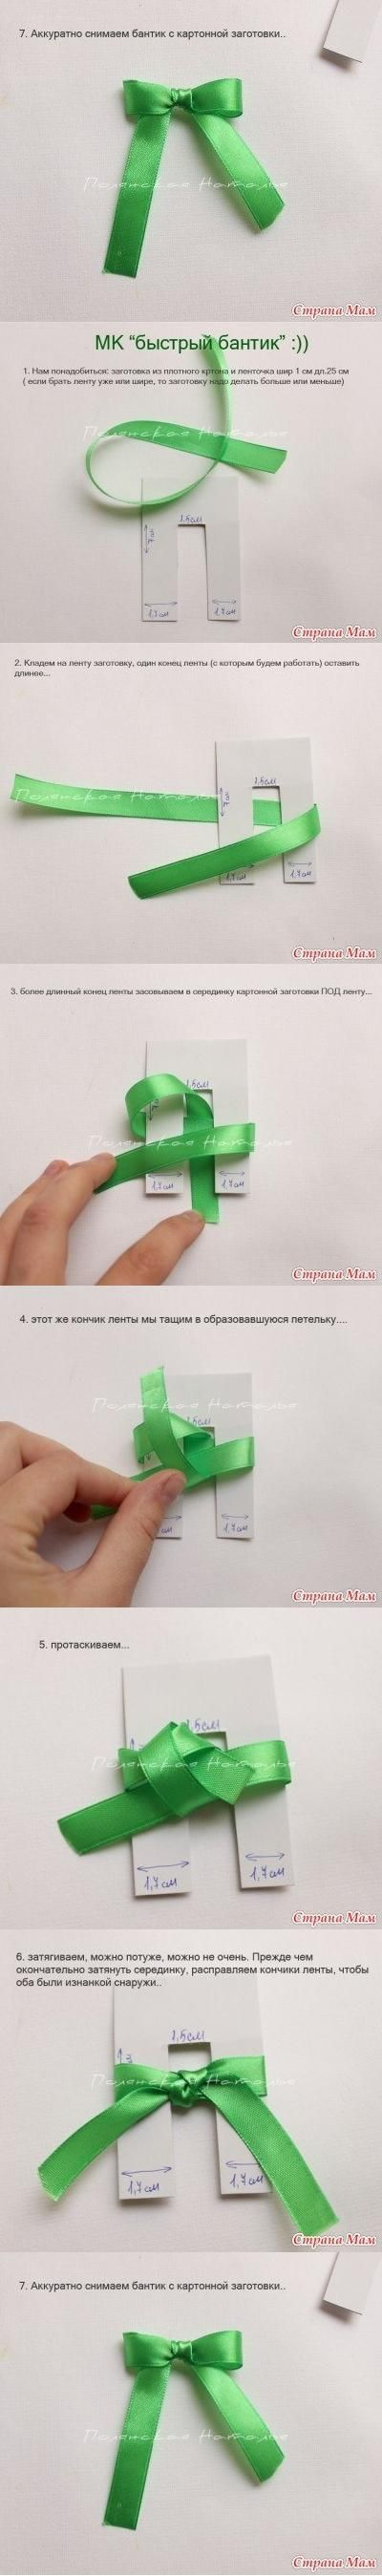 Diy easy ribbon bow diy projects ideas for How to tie a ribbon on a bookmark